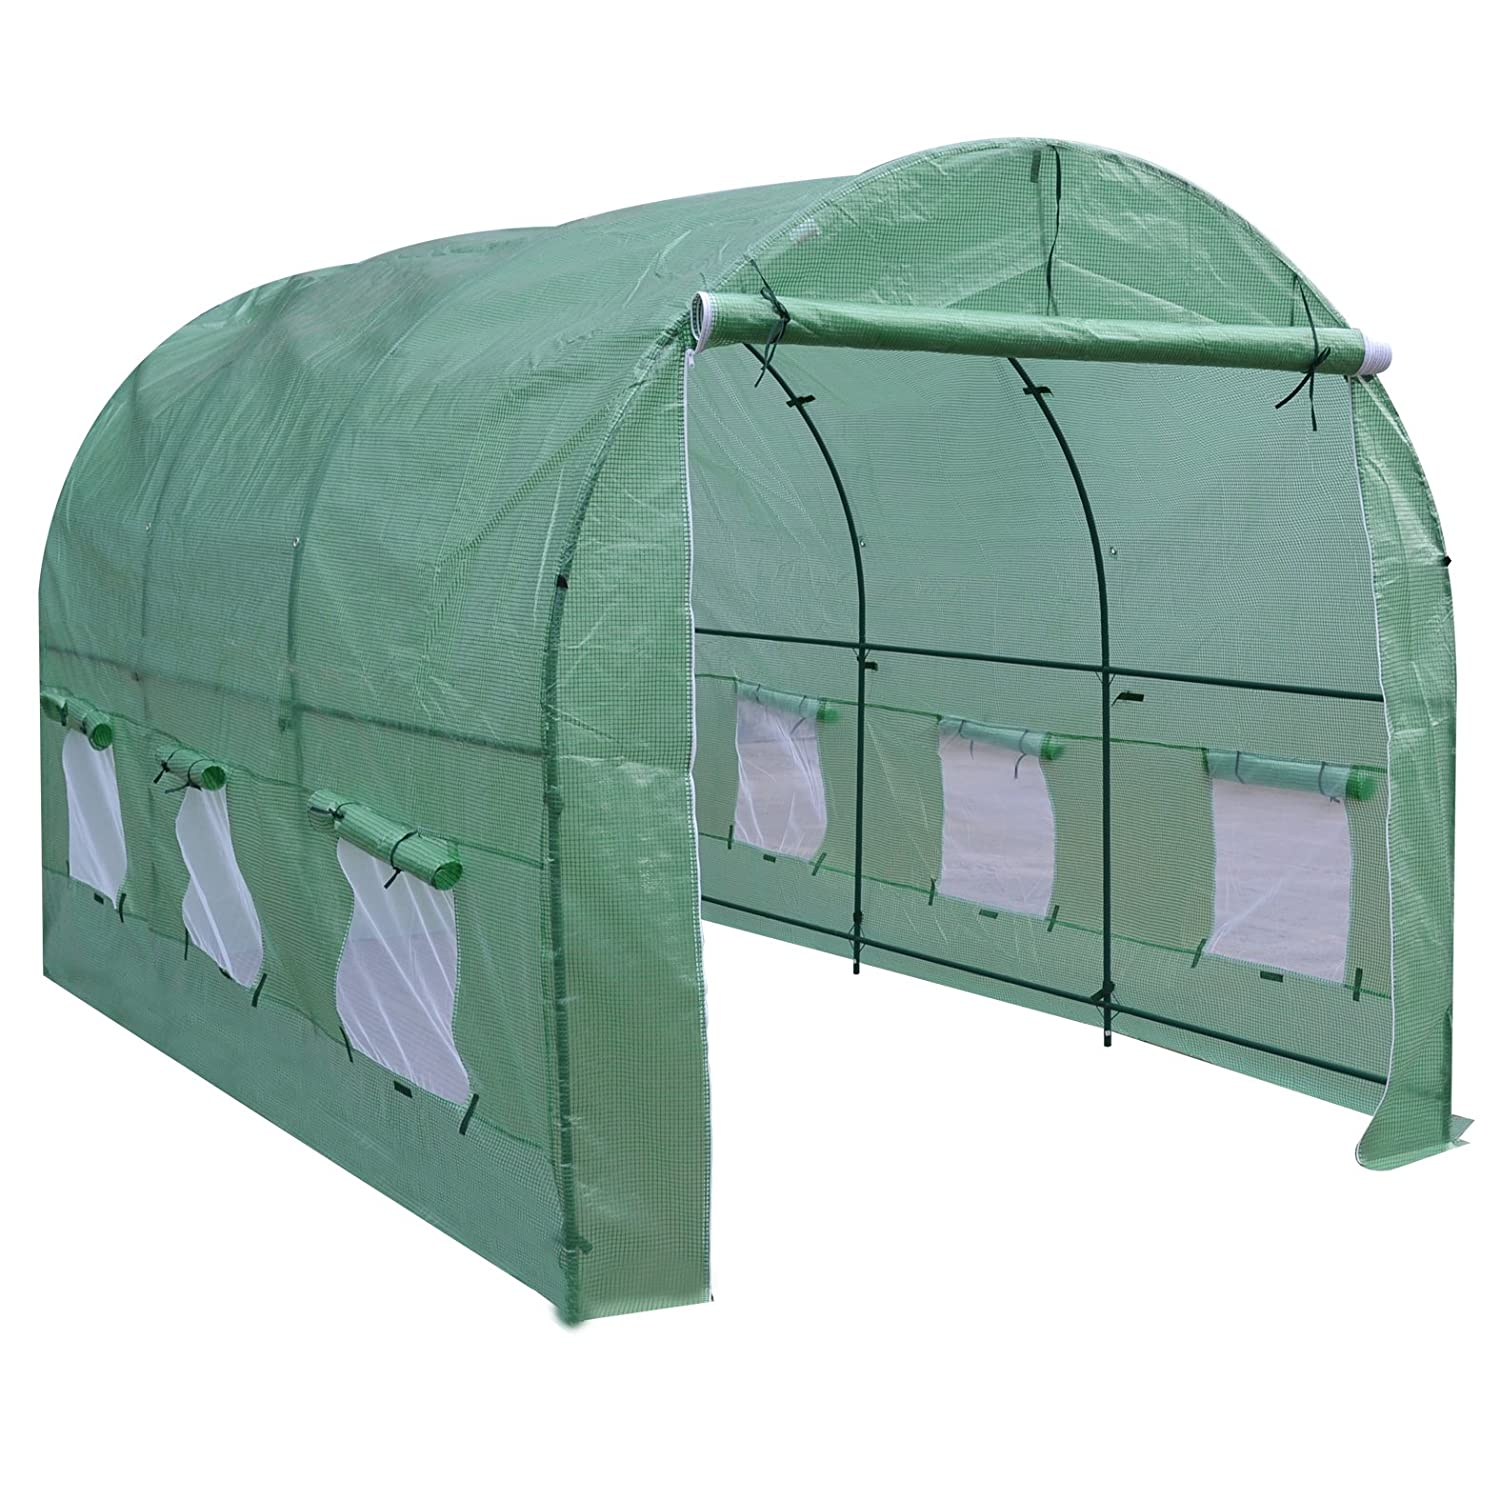 Amazon.com : BenefitUSA Hot Green House 12u0027X7u0027X7u0027 Larger Walk In Outdoor  Plant Gardening Greenhouse Plant Protector : Patio, Lawn U0026 Garden